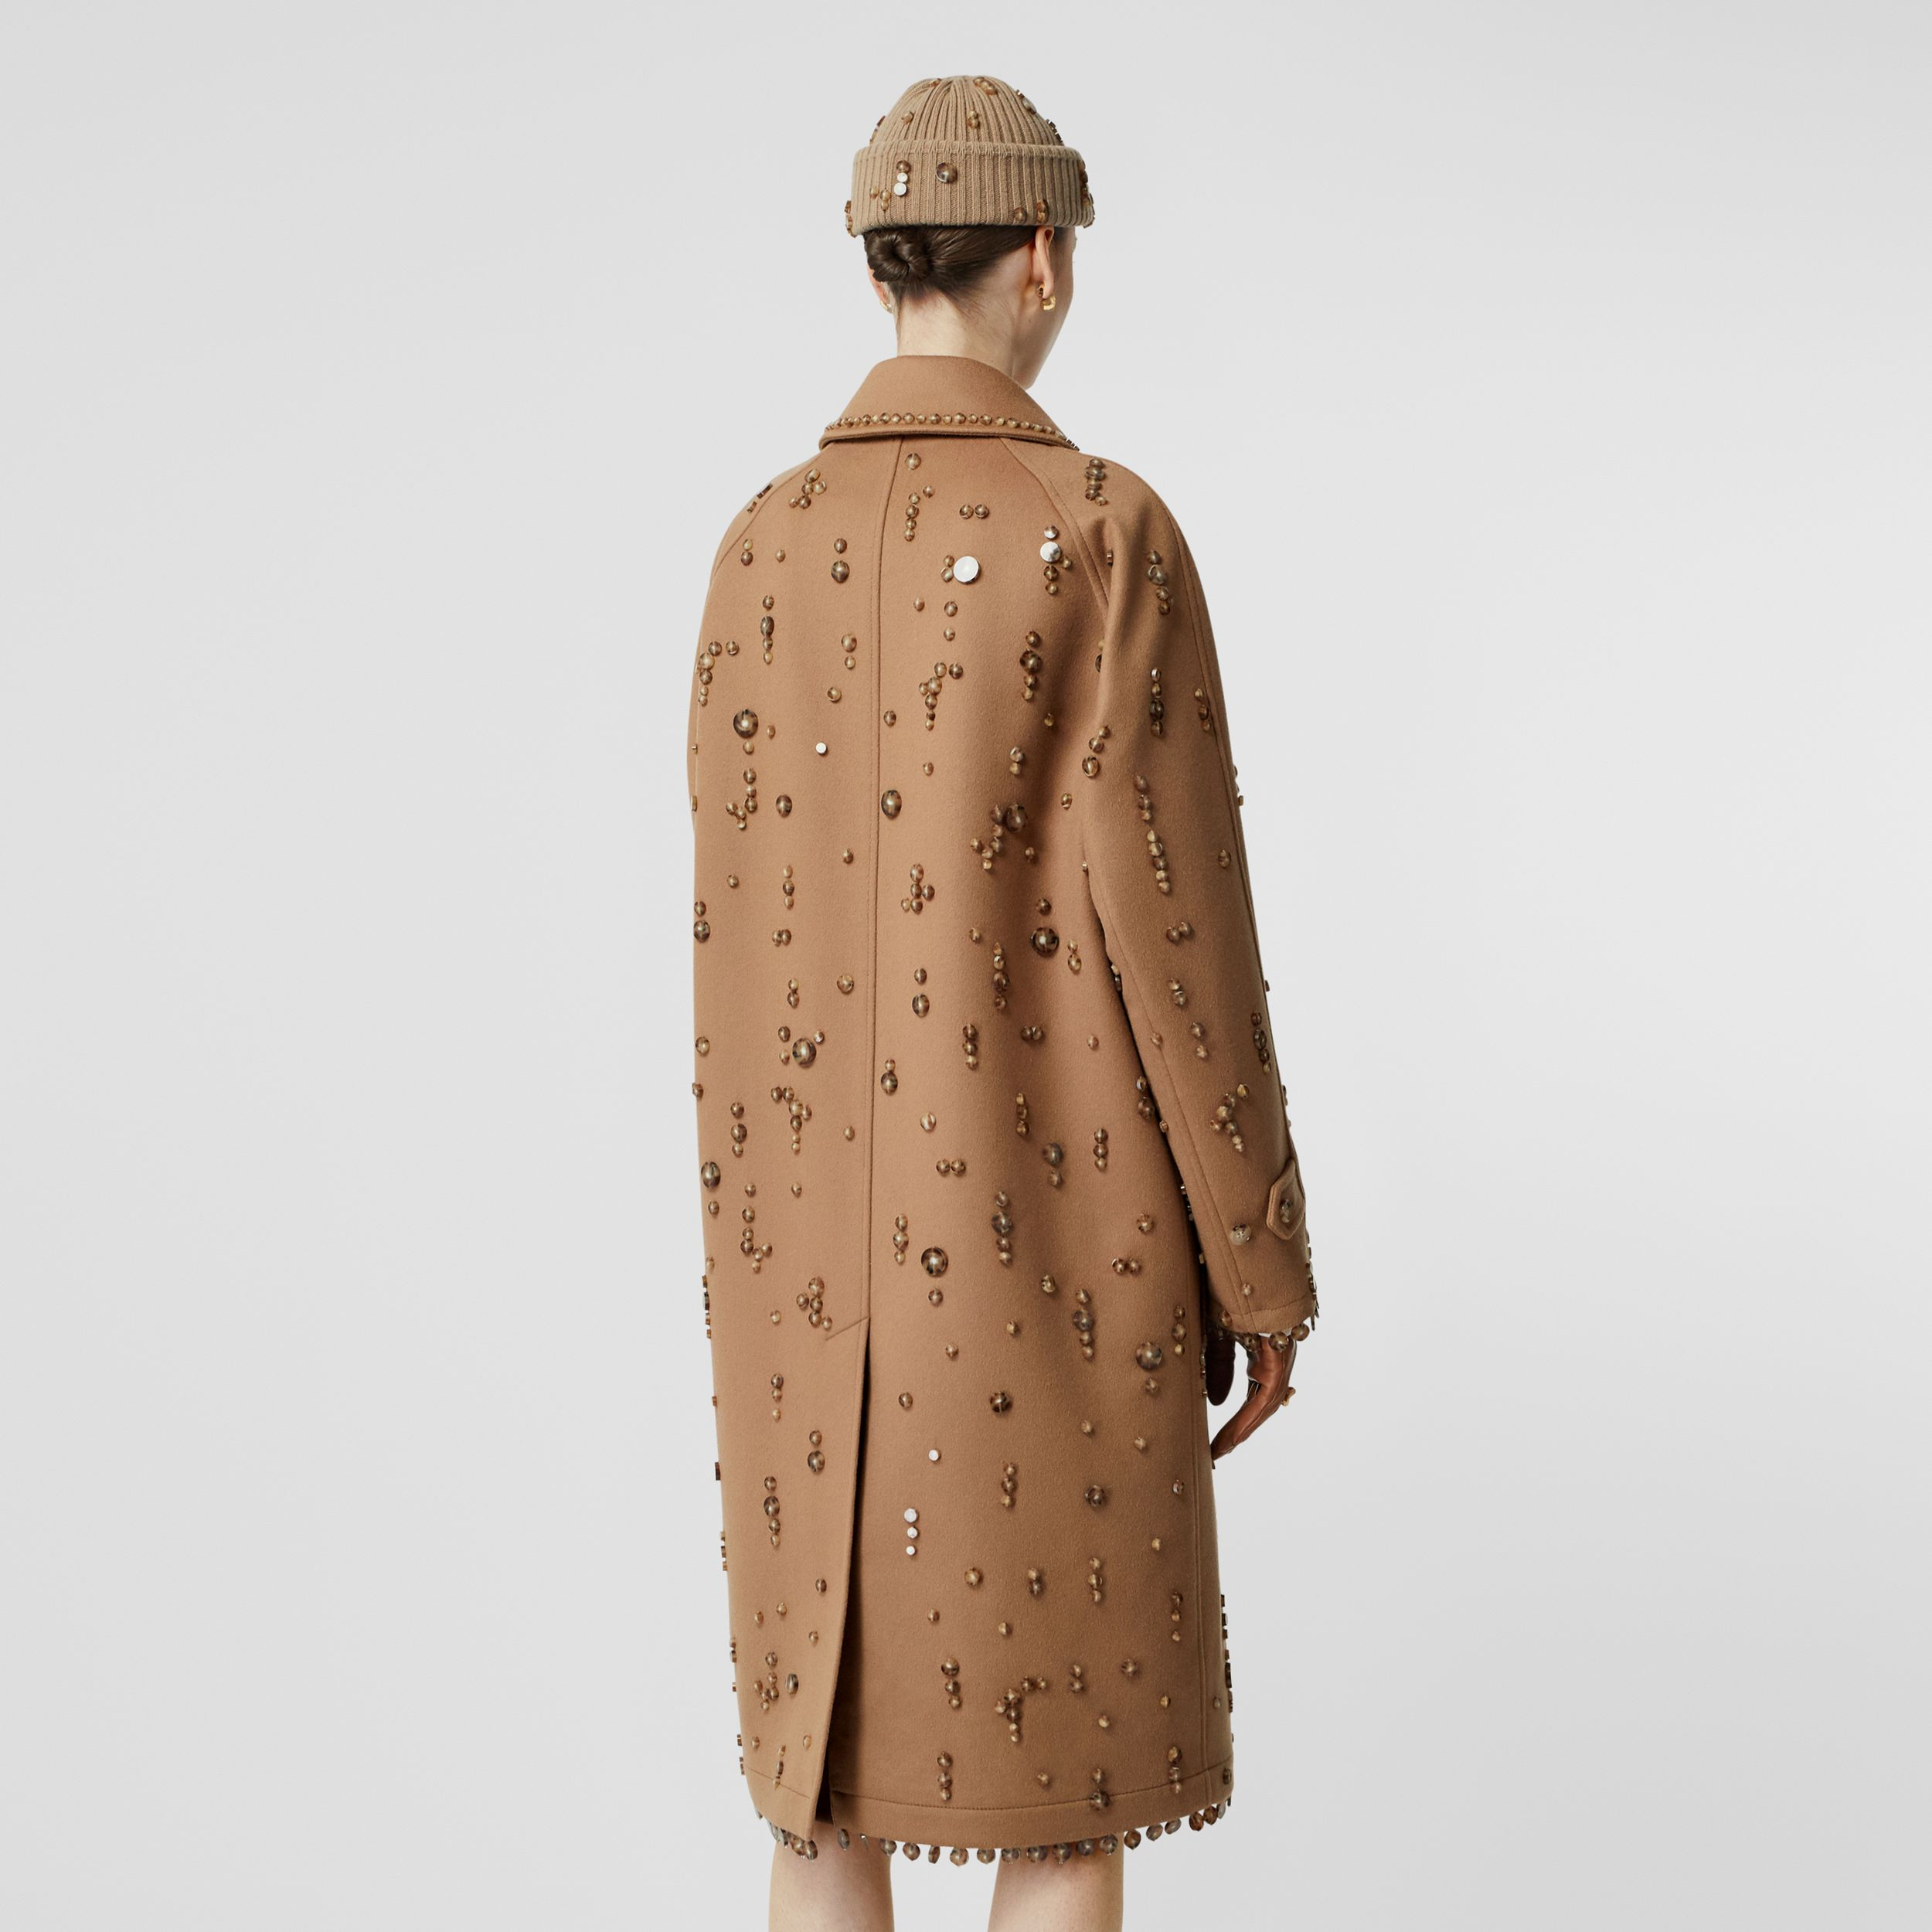 Embellished Wool Cashmere Car Coat in Camel - Women | Burberry - 3